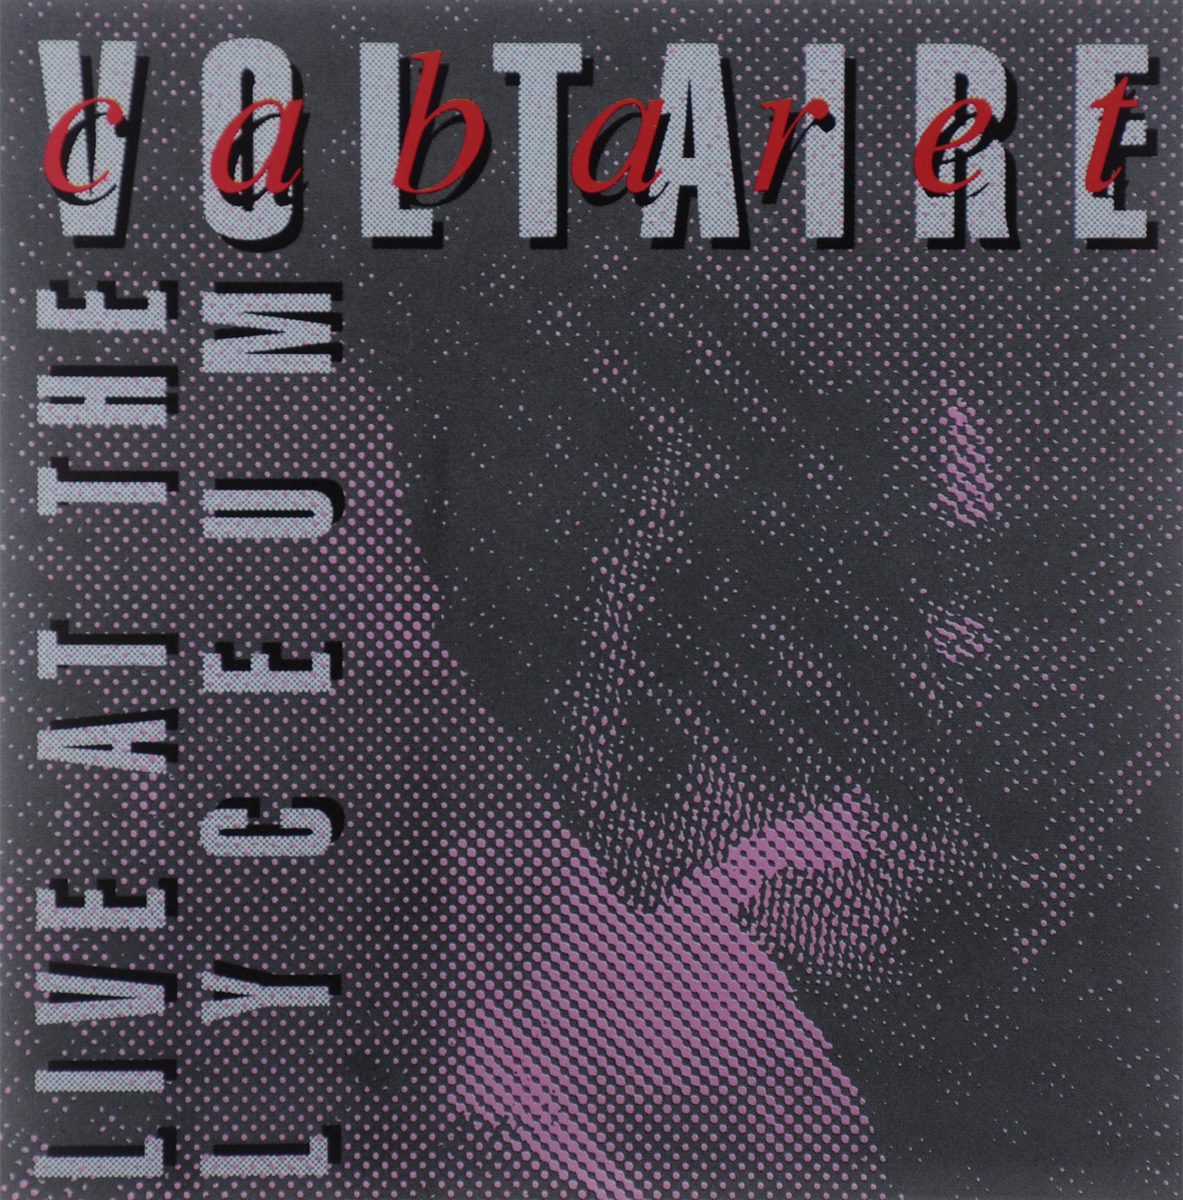 Cabaret Voltaire Cabaret Voltaire. Live At The Liceum cabaret voltaire cabaret voltaire the covenant the sword and the arm of the lord lp